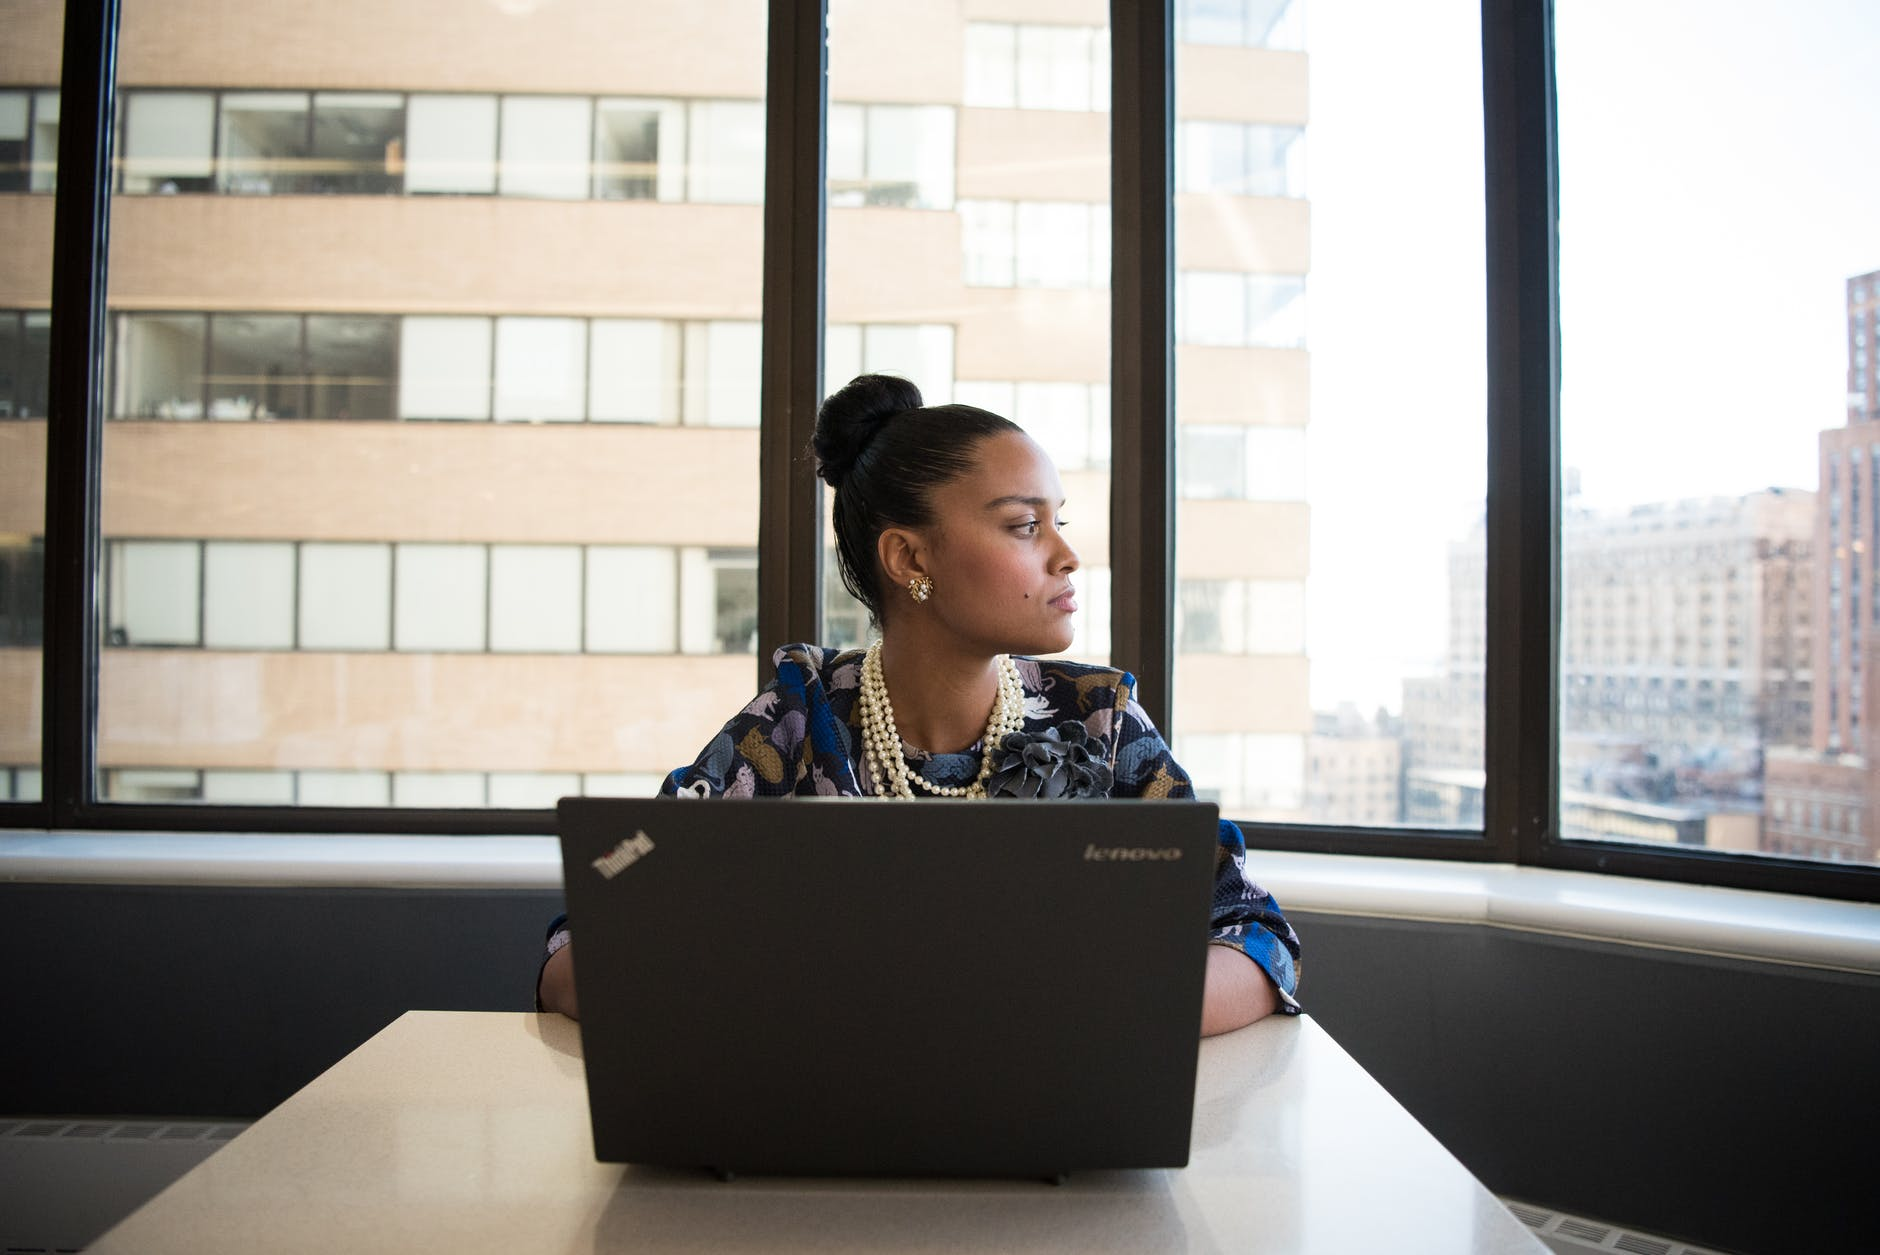 Woman on laptop looking outside office window